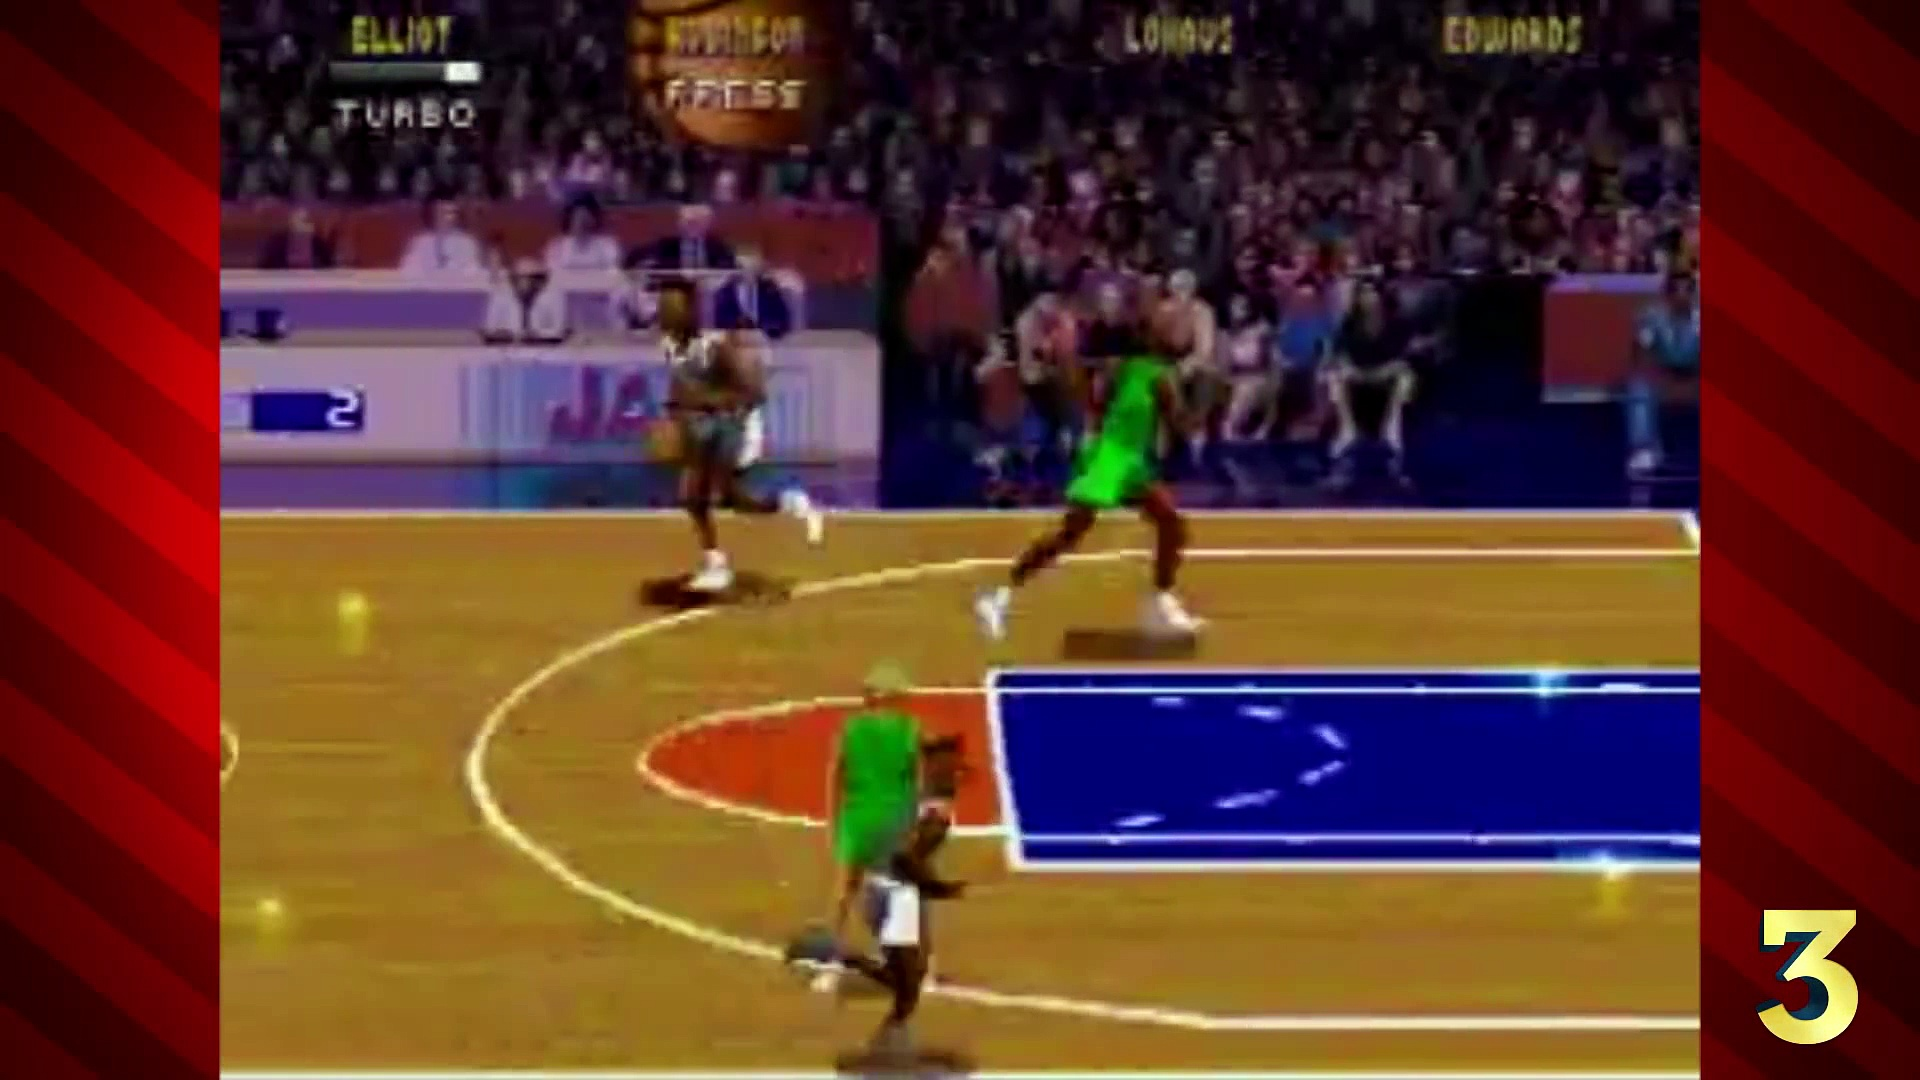 TOP 5 SPORTS GAMES